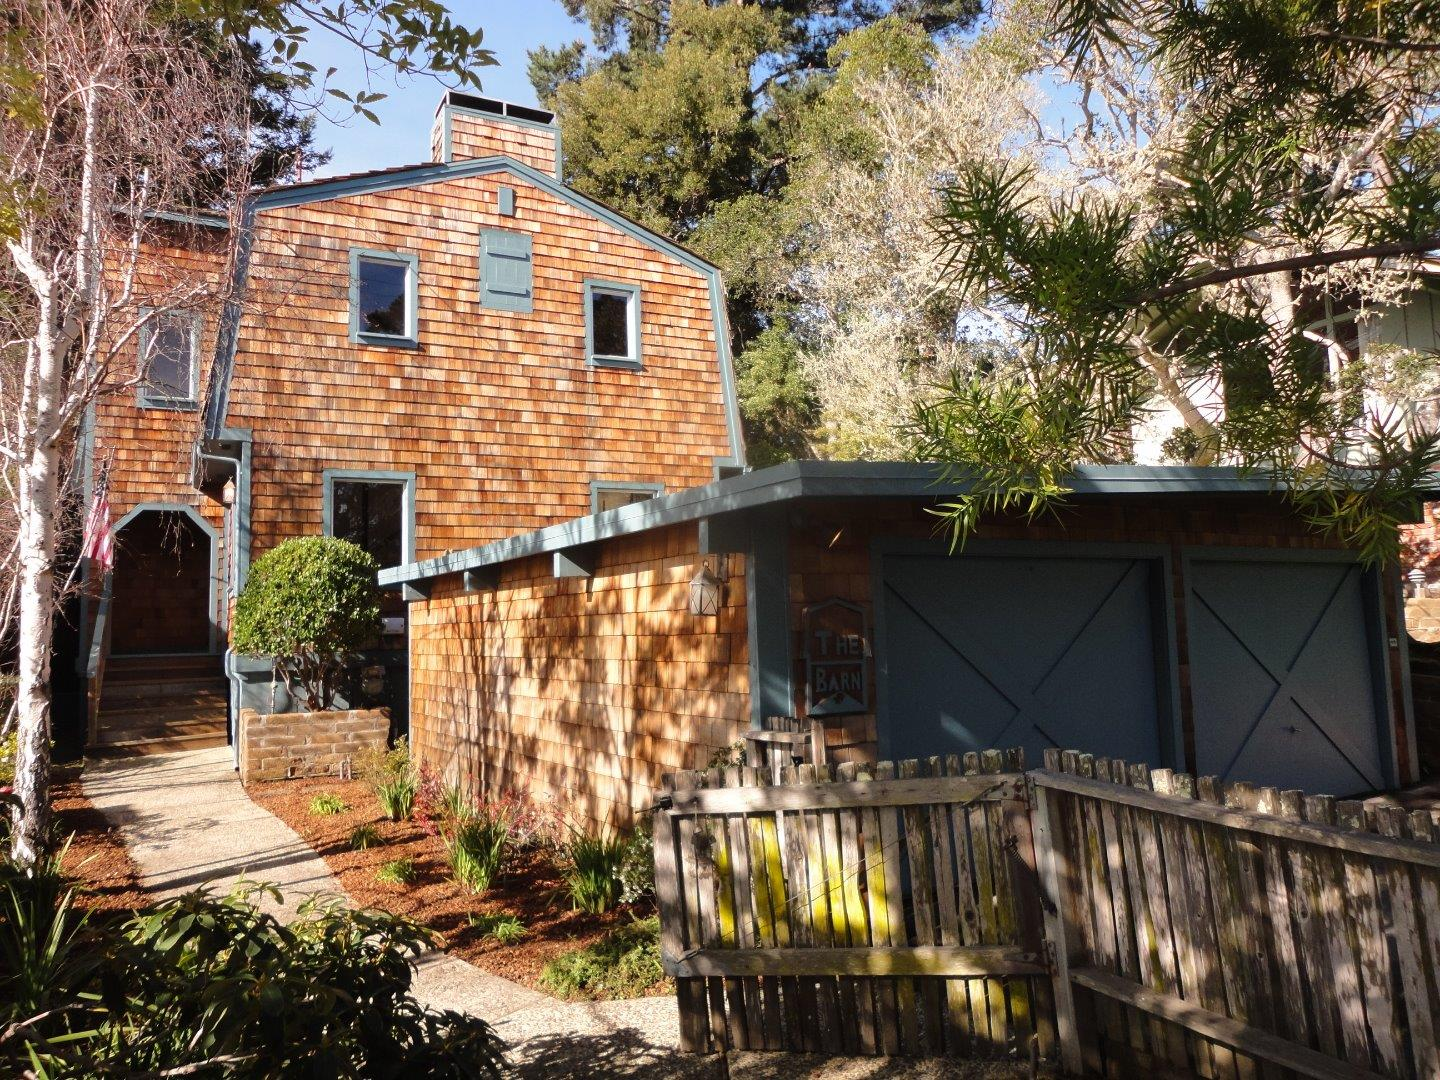 2 NW Nw Mission St and Santa Lucia Street Carmel, CA 93921